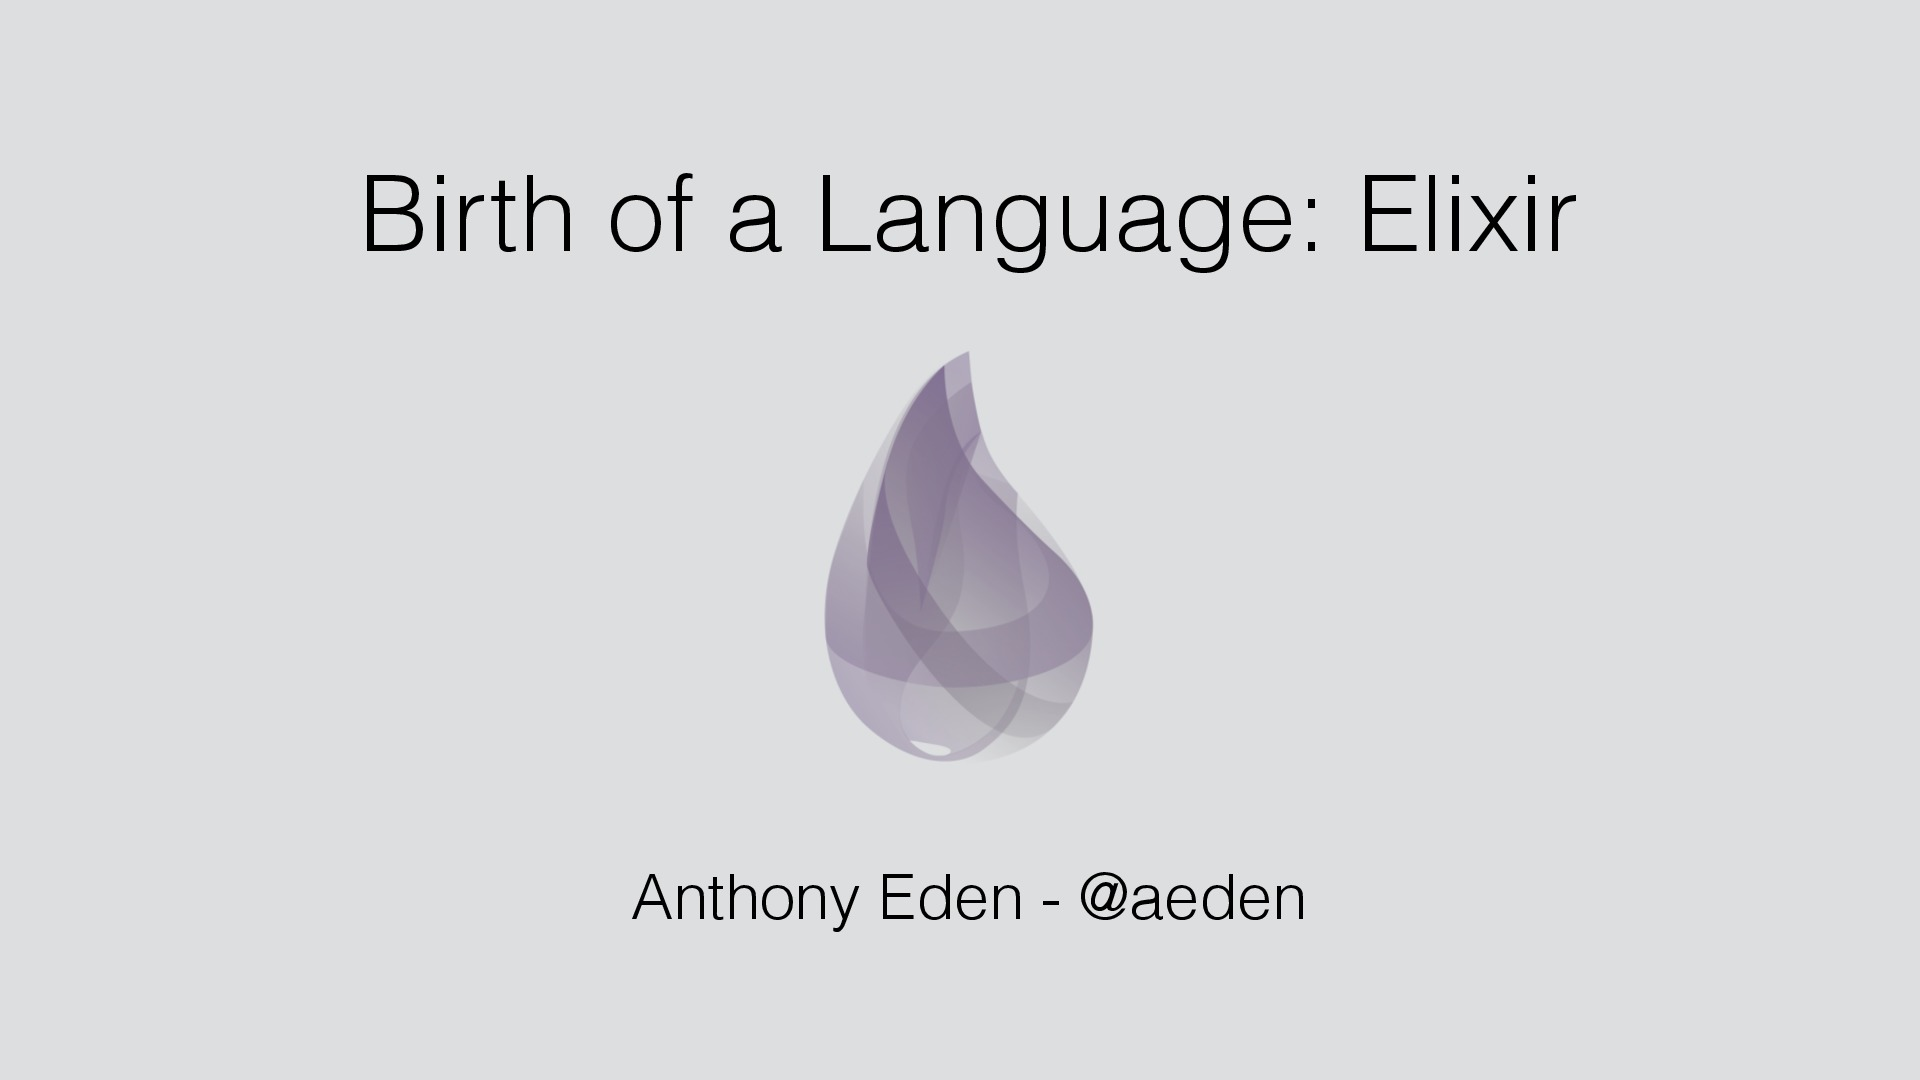 Birth of a Language: Elixir